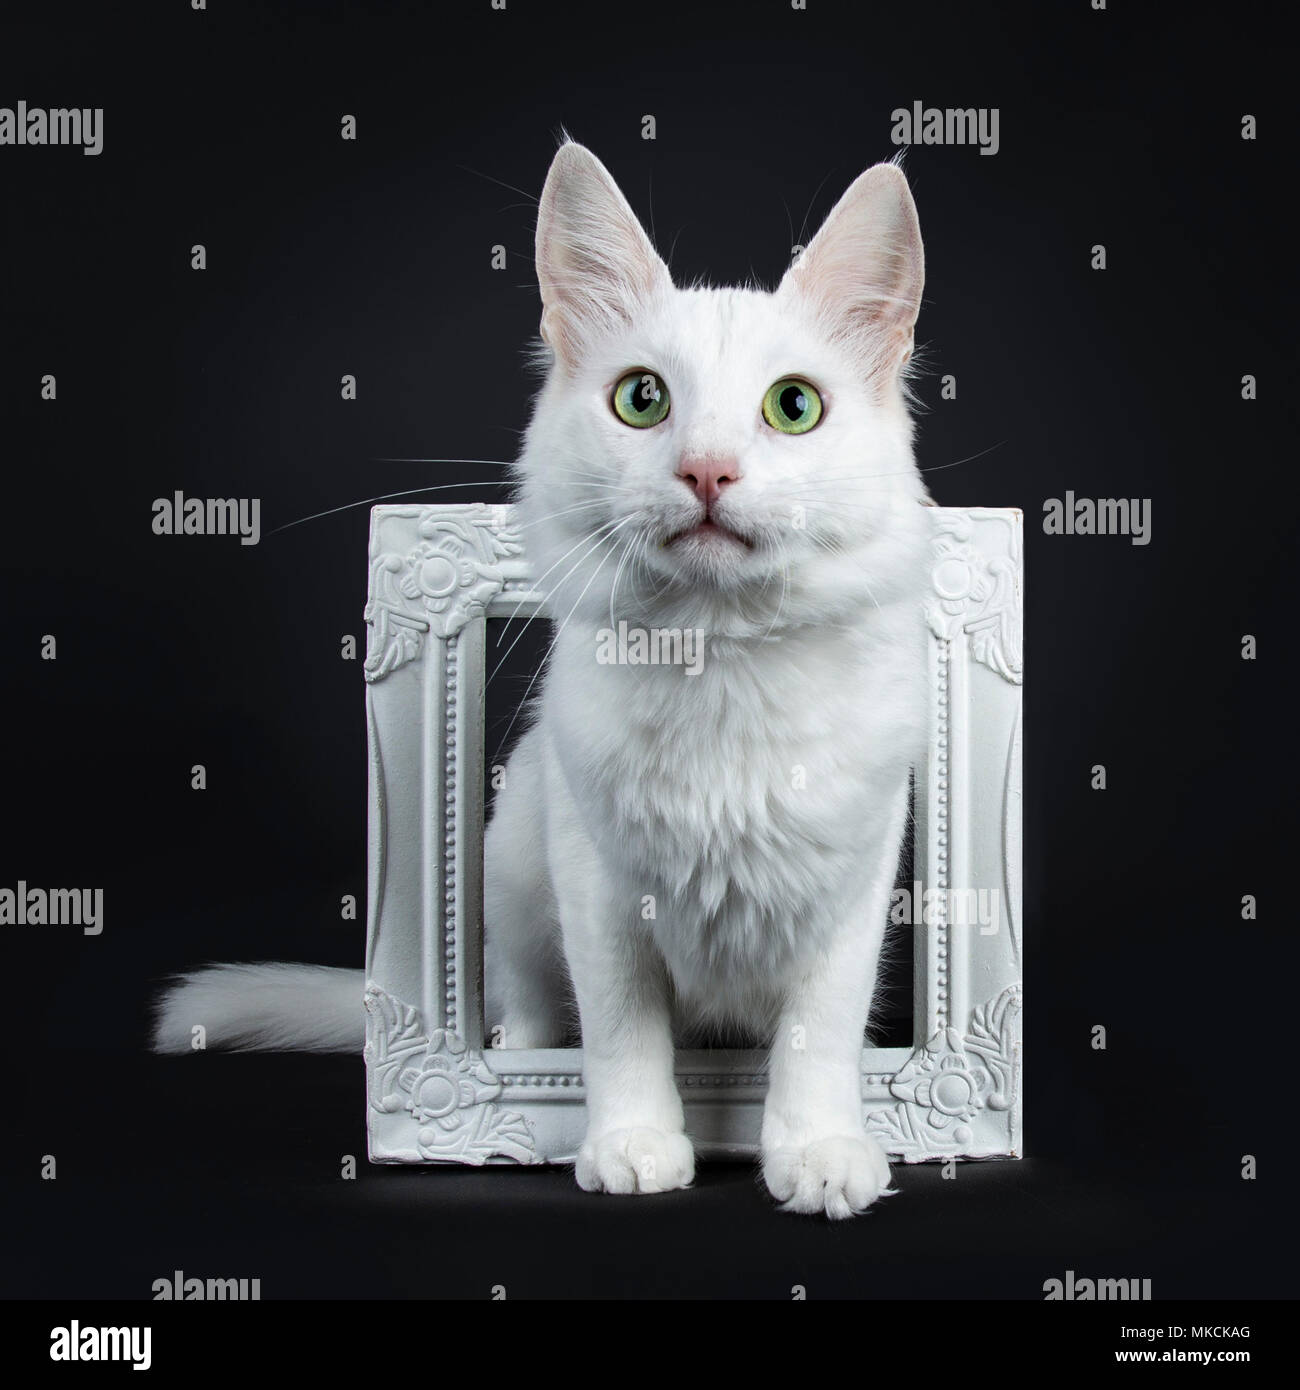 Solid White Turkish Angora Cat With Green Eyes Sitting Throught